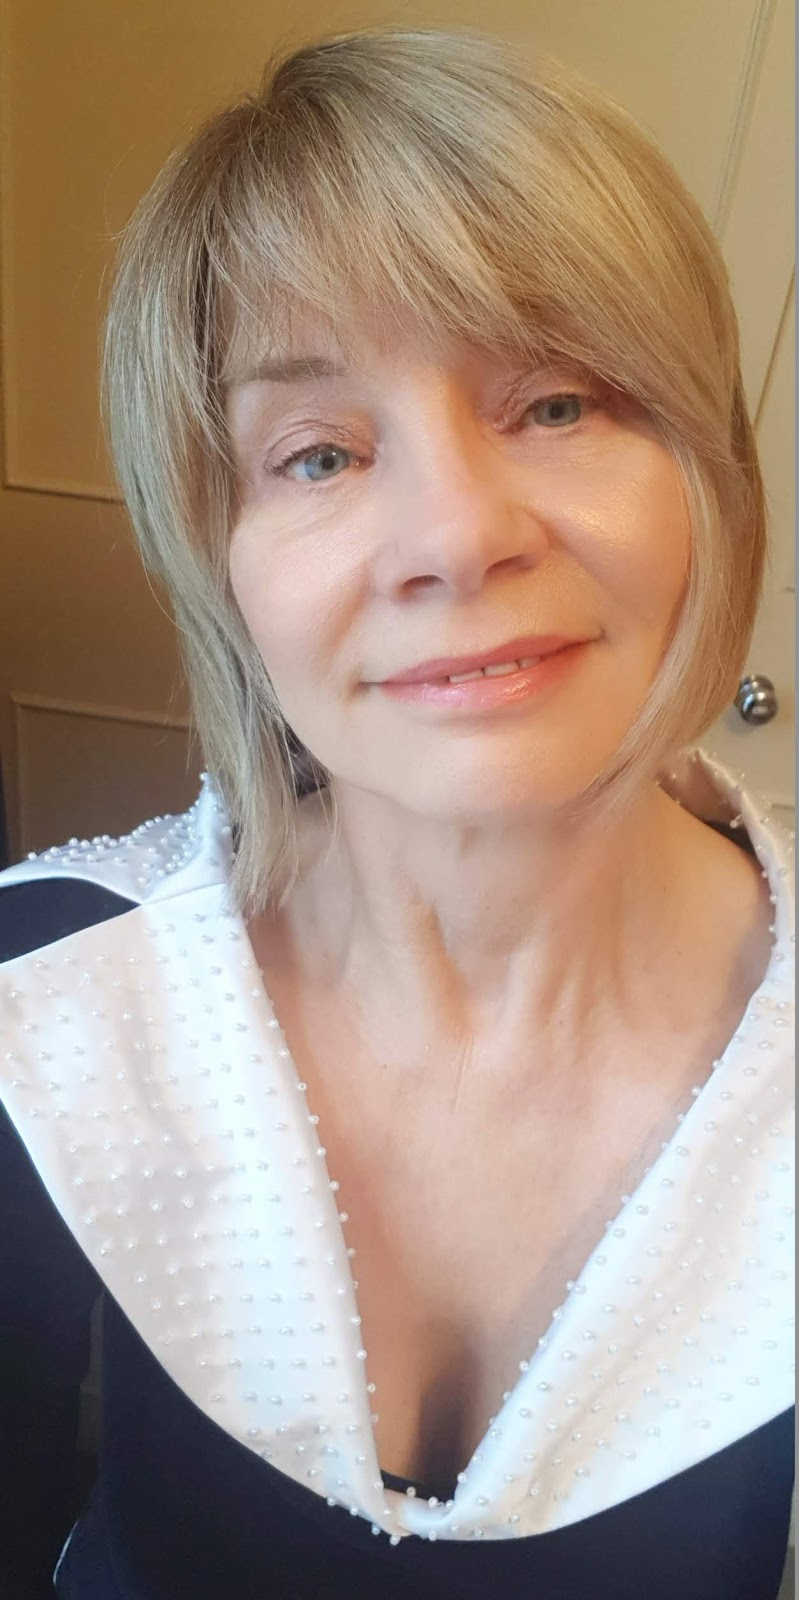 Over-50s blogger Gail Hanlon from Is This Mutton with the finished result of a thirty pound makeup spree to find bargain products needed for a party face.